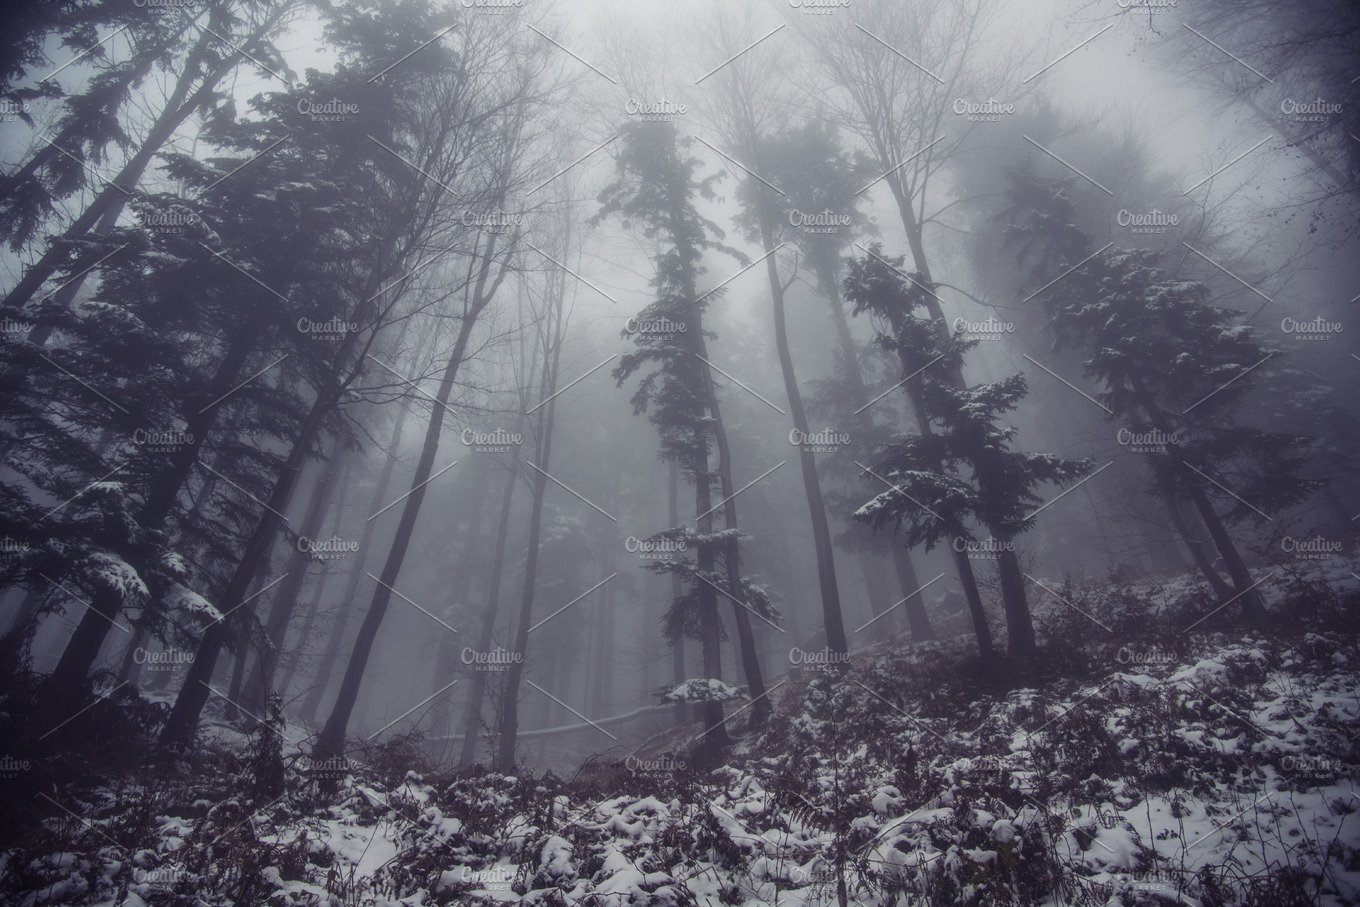 Dark And Gloomy Forest In Winter Nature Photos